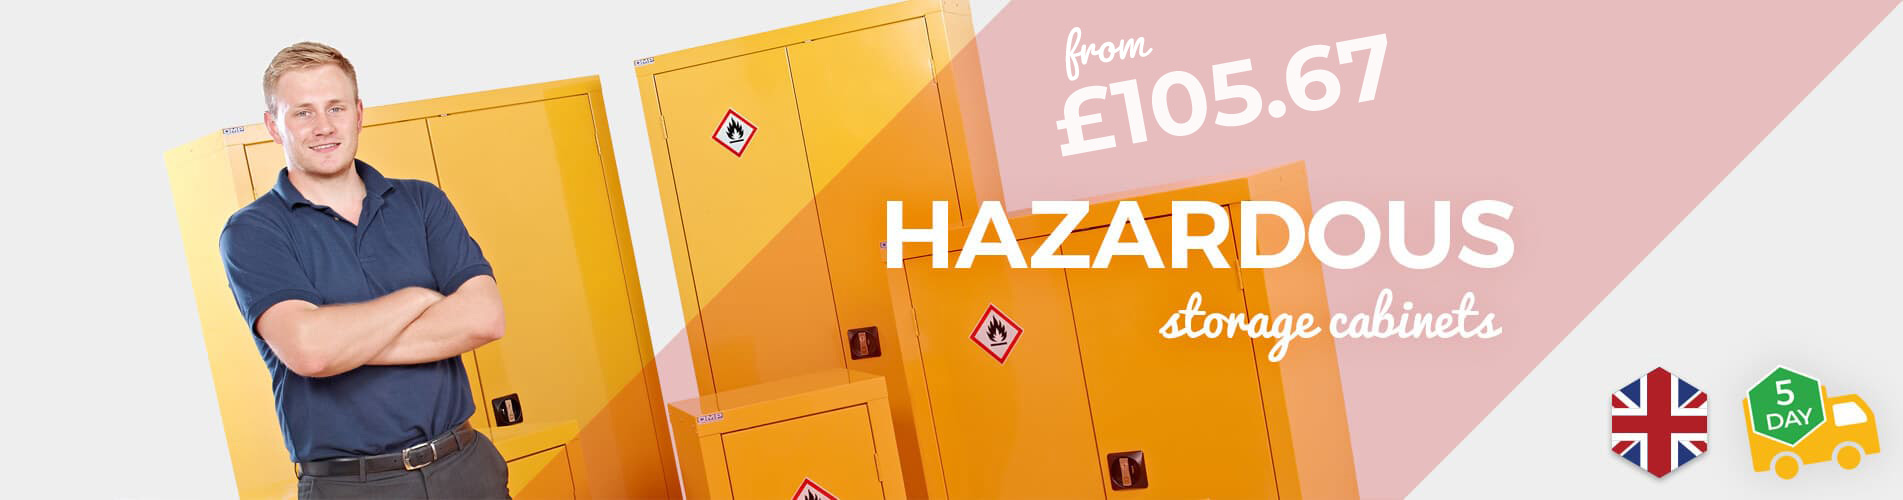 Shop UK Manufactured Hazardous Storage Cabinets available with Free 5 Day Delivery